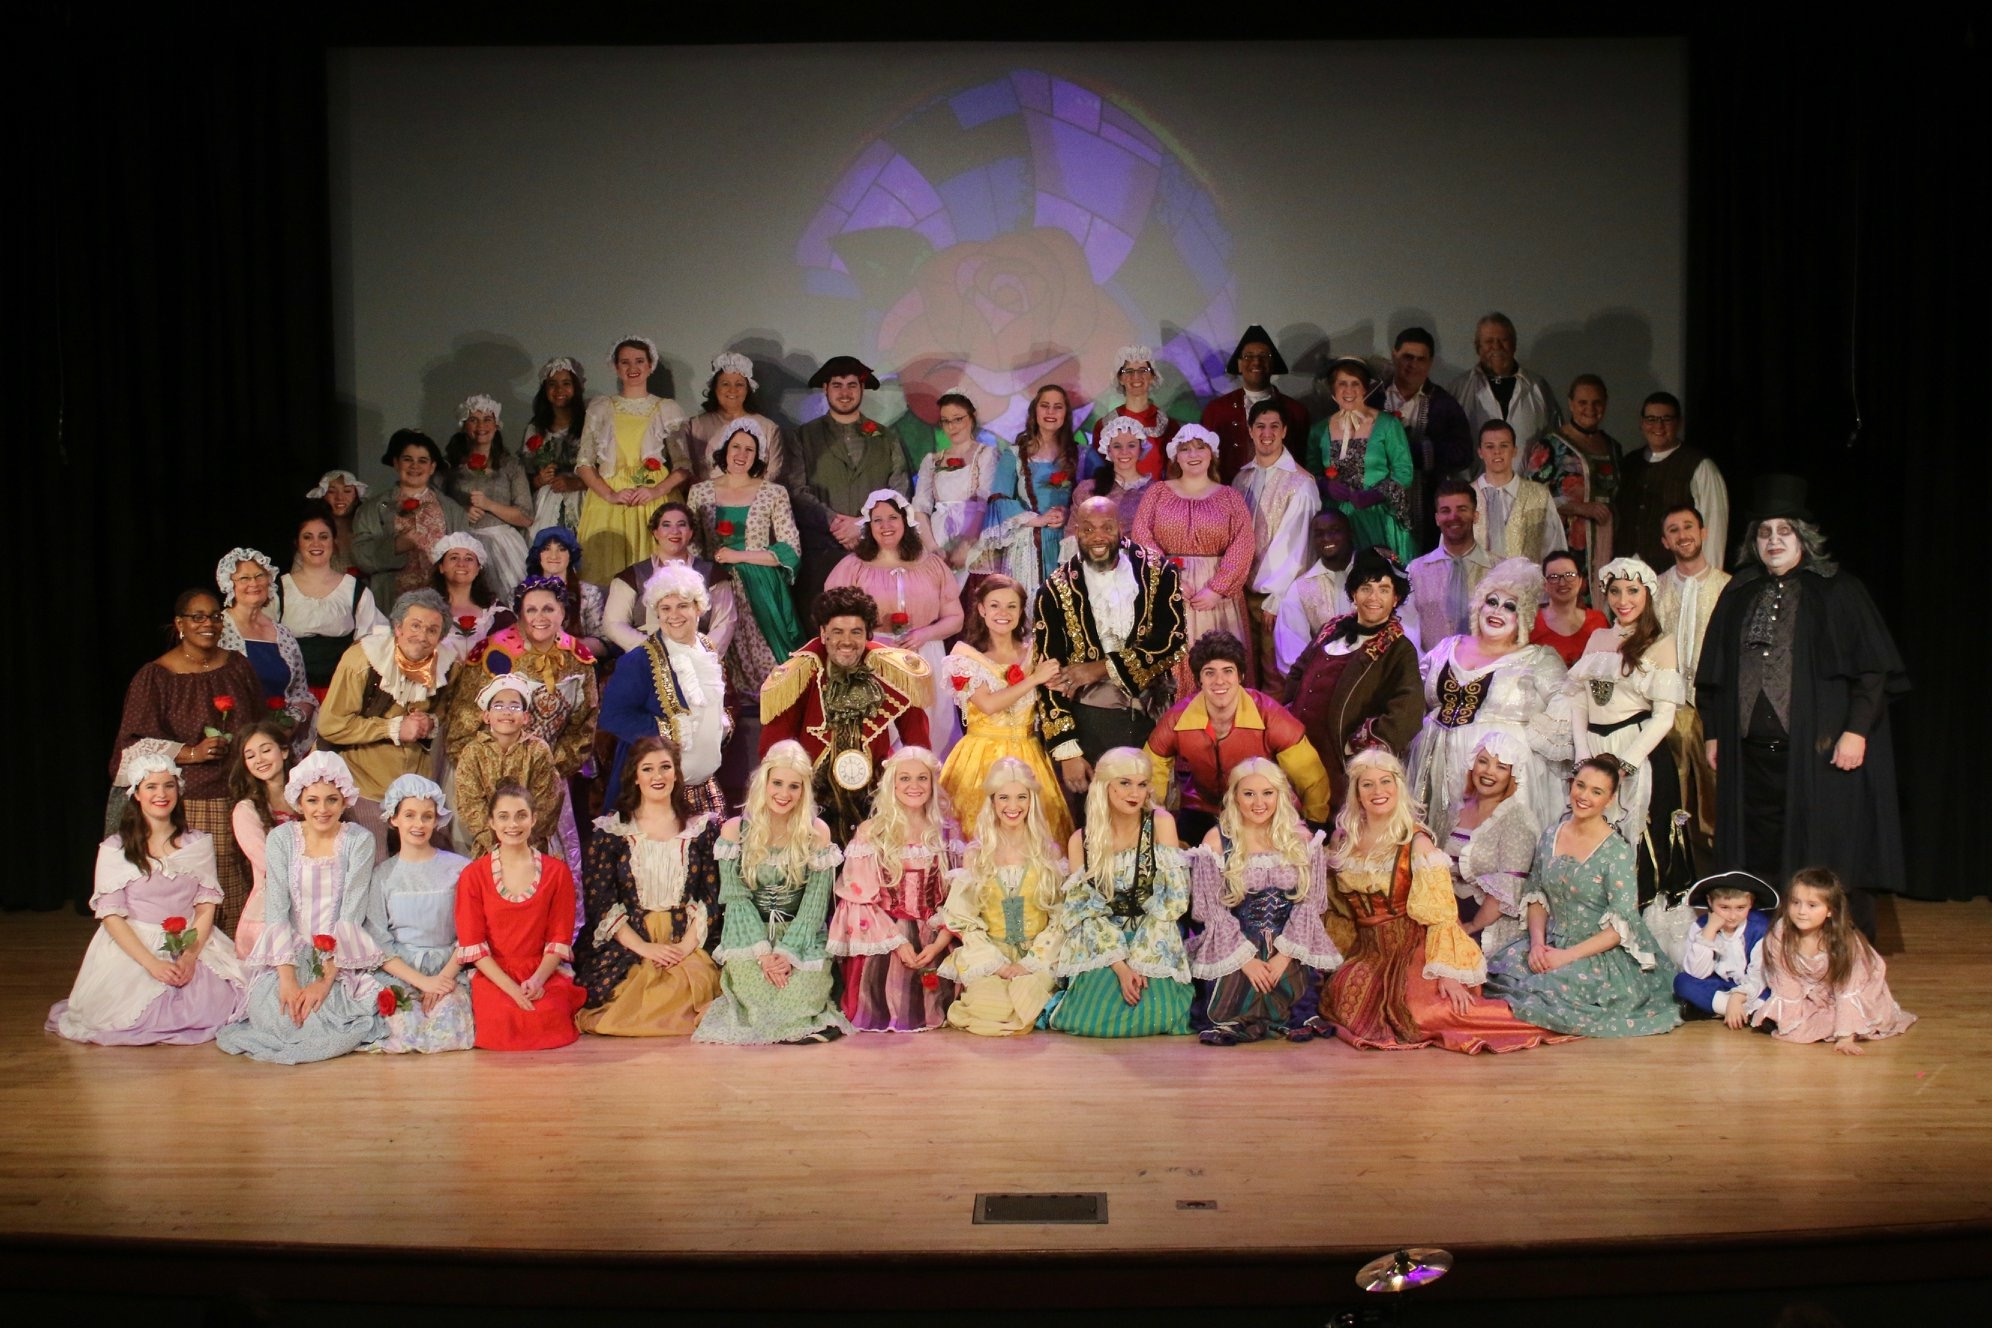 Beauty and the Beast Musical in Toledo Ohio Starring Wedding Photographer from the Northwest Ohio Area